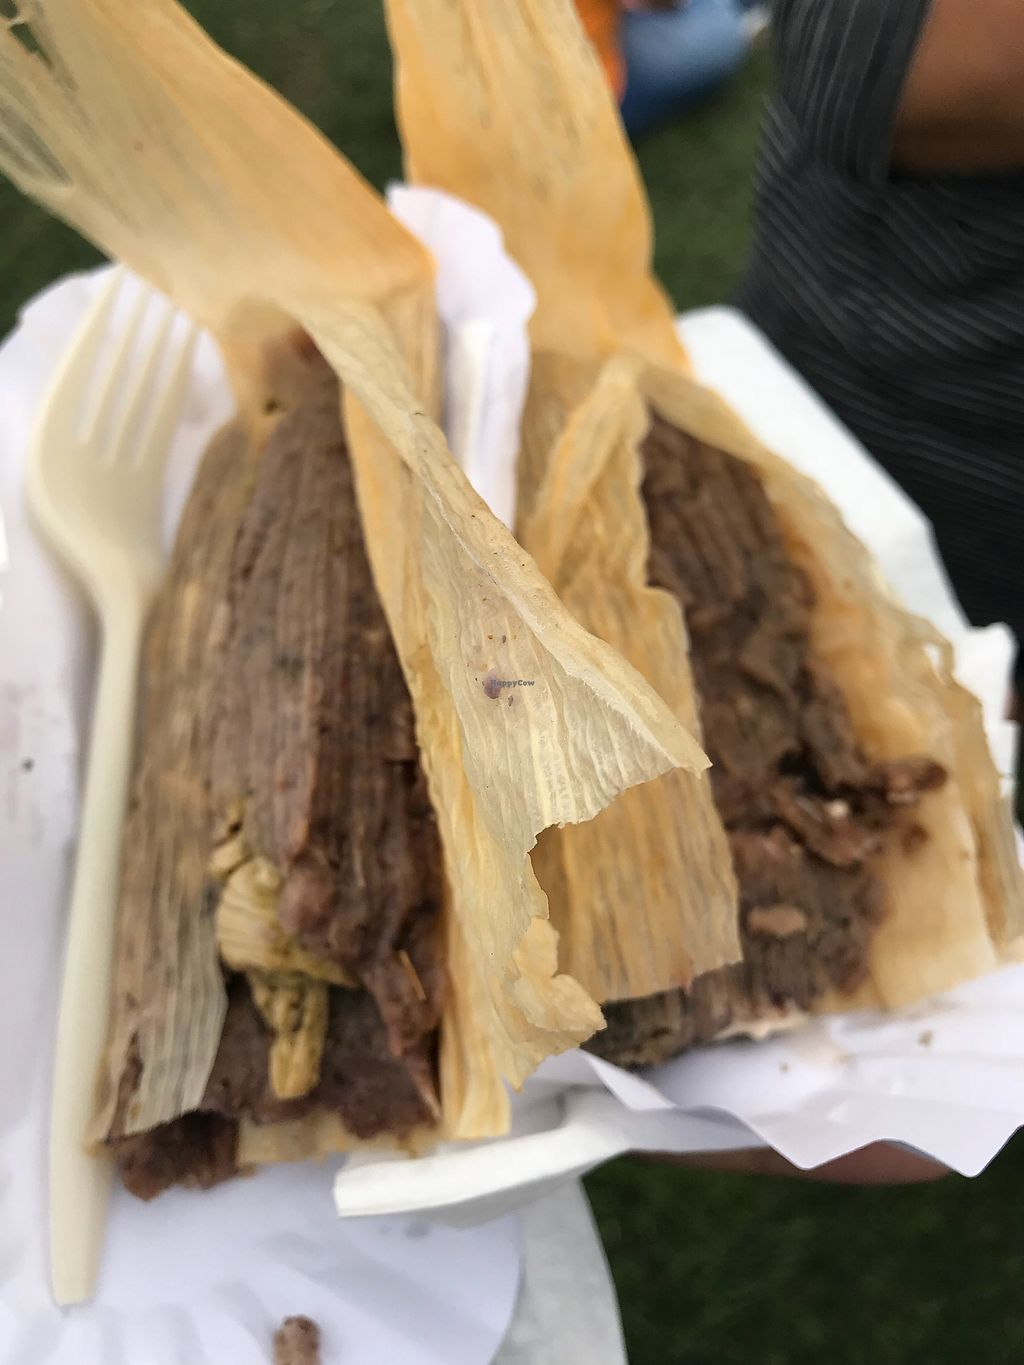 """Photo of The Vegan Tamale Company  by <a href=""""/members/profile/xmrfigx"""">xmrfigx</a> <br/>Blue corn mass tamales! <br/> November 26, 2017  - <a href='/contact/abuse/image/105916/329269'>Report</a>"""